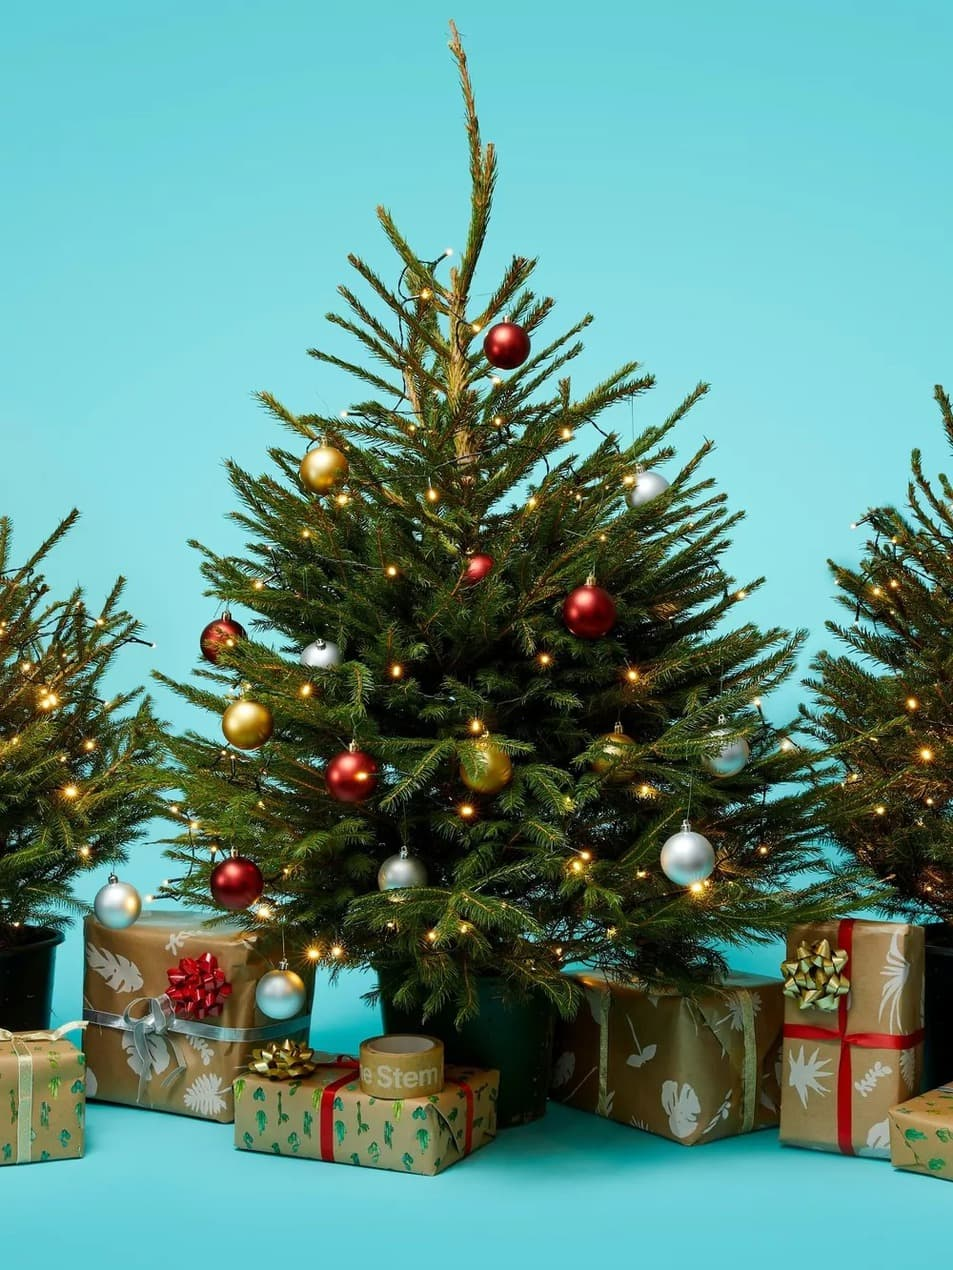 The 5 best ethical Christmas tree sellers in London to buy from The Stem Christmas Tree 2